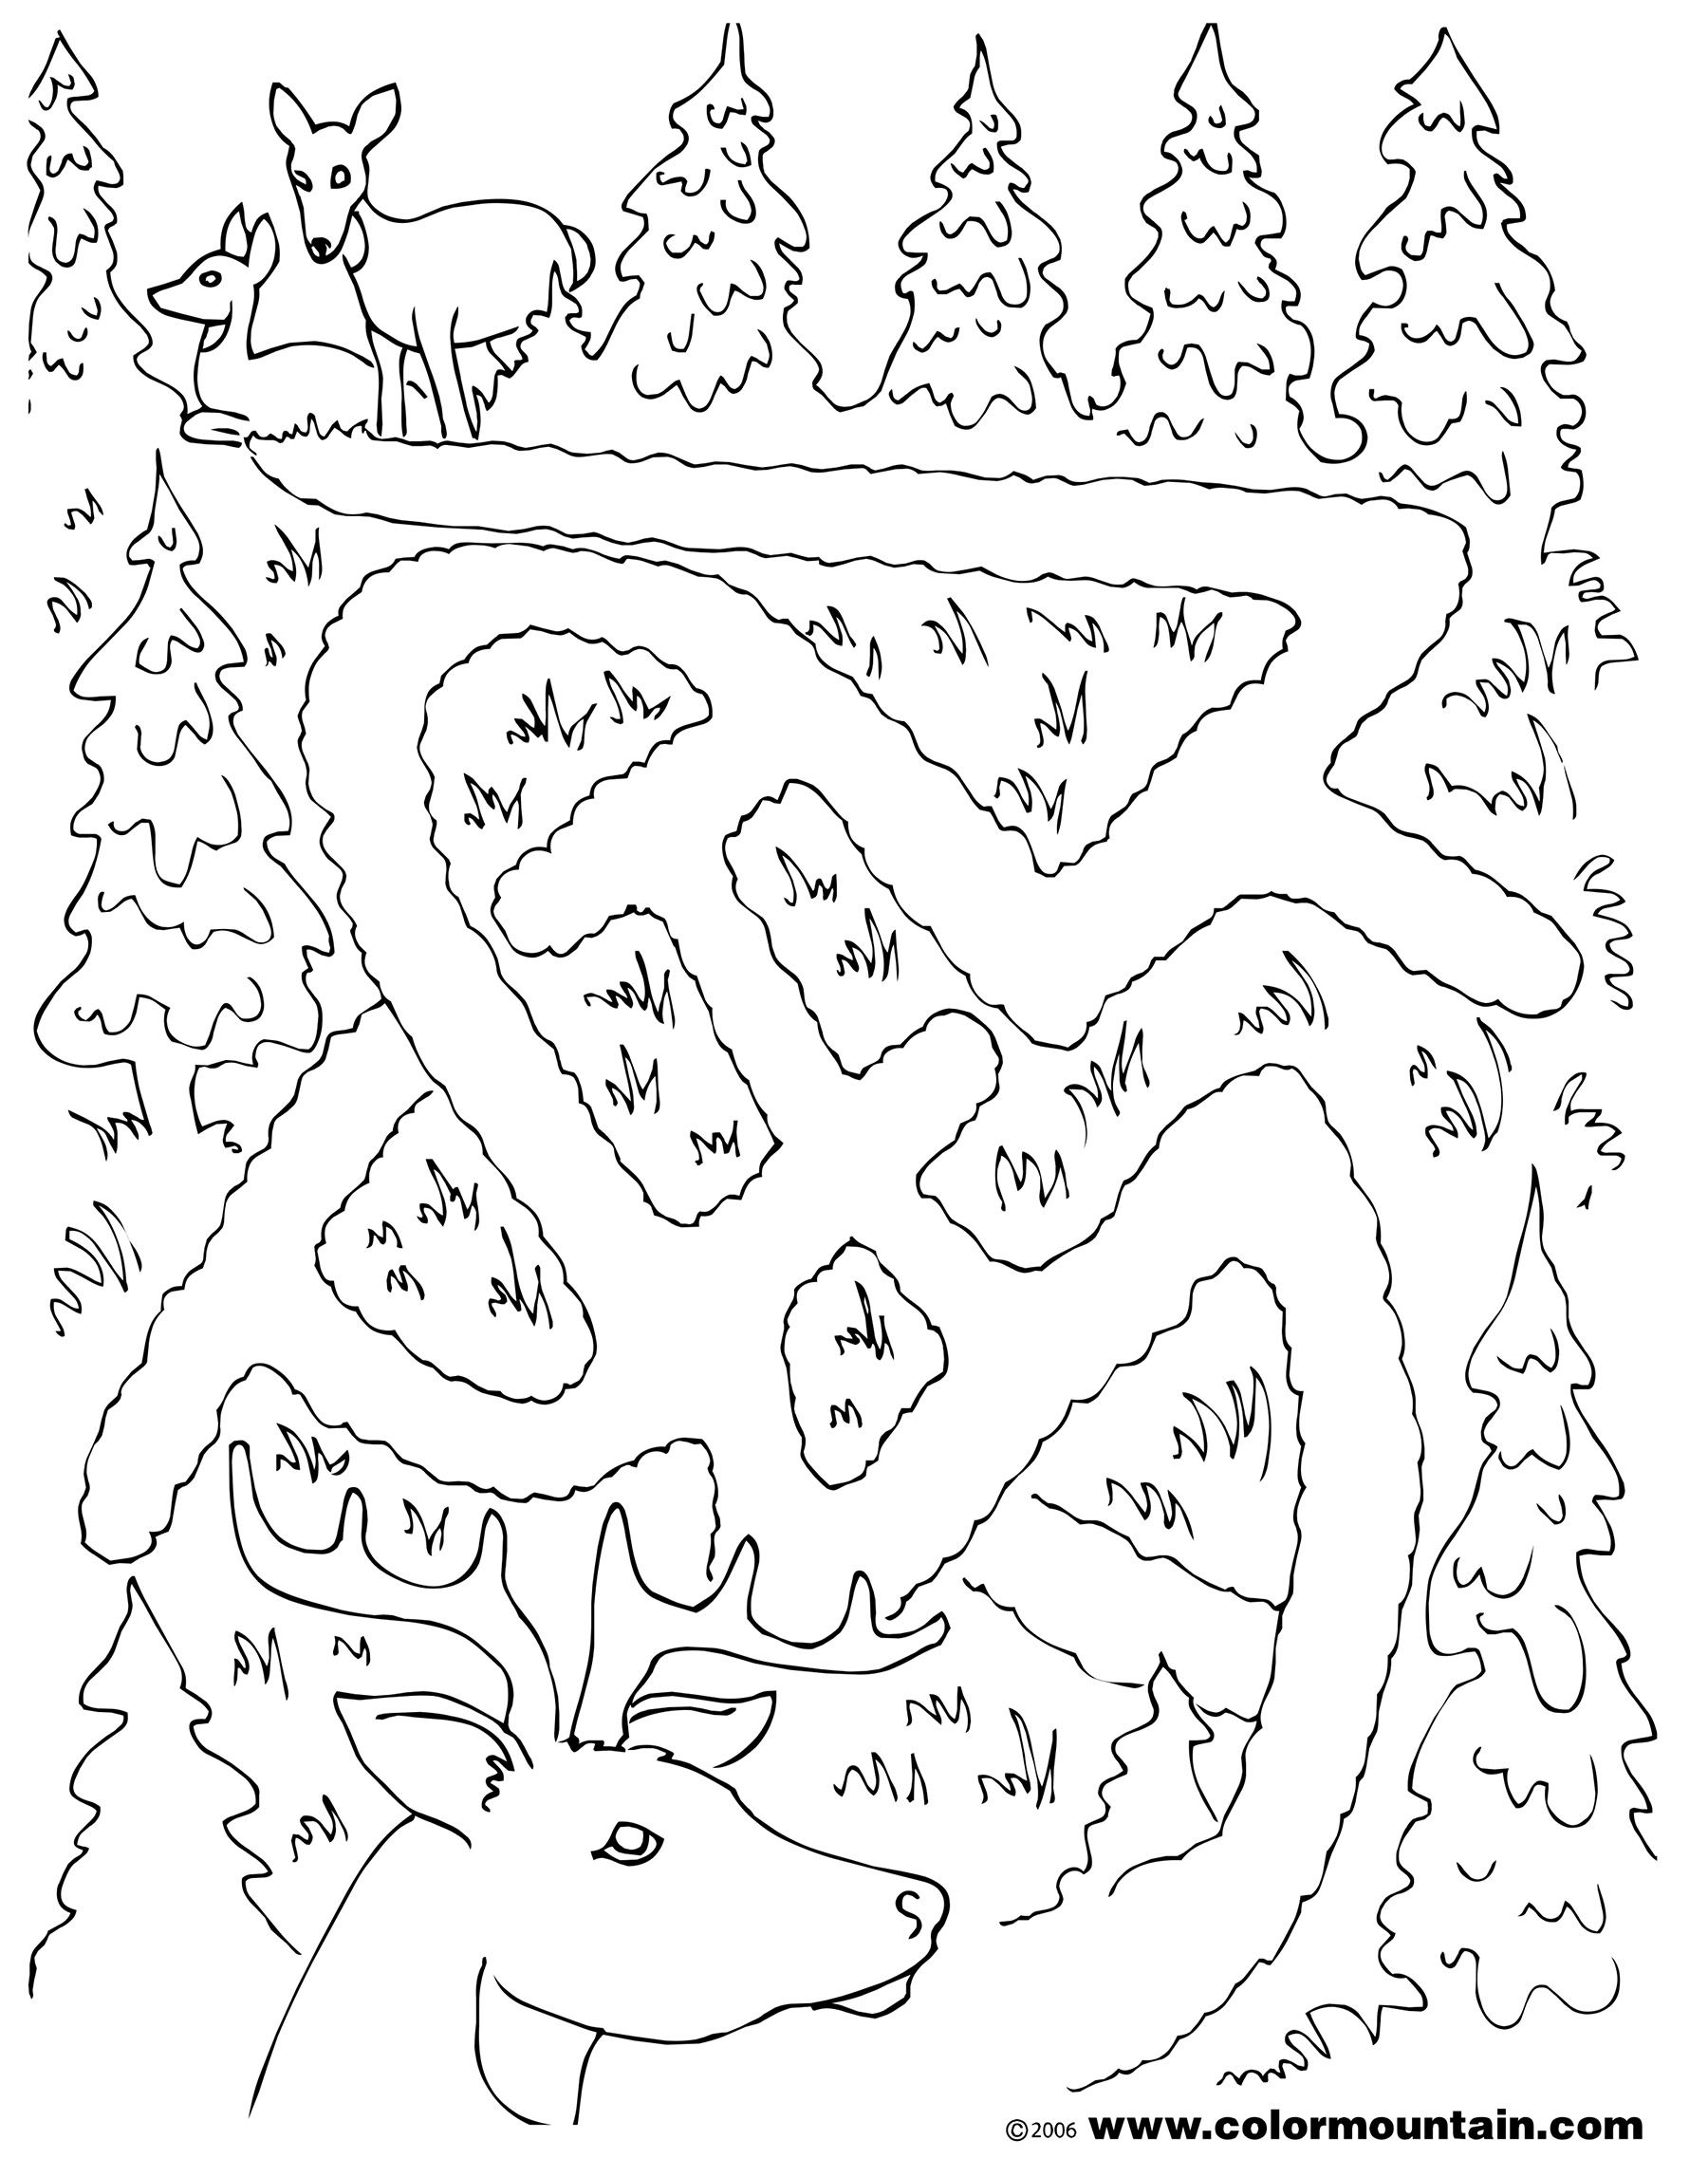 Deer Maze Activity Coloring Sheet Coloring Page